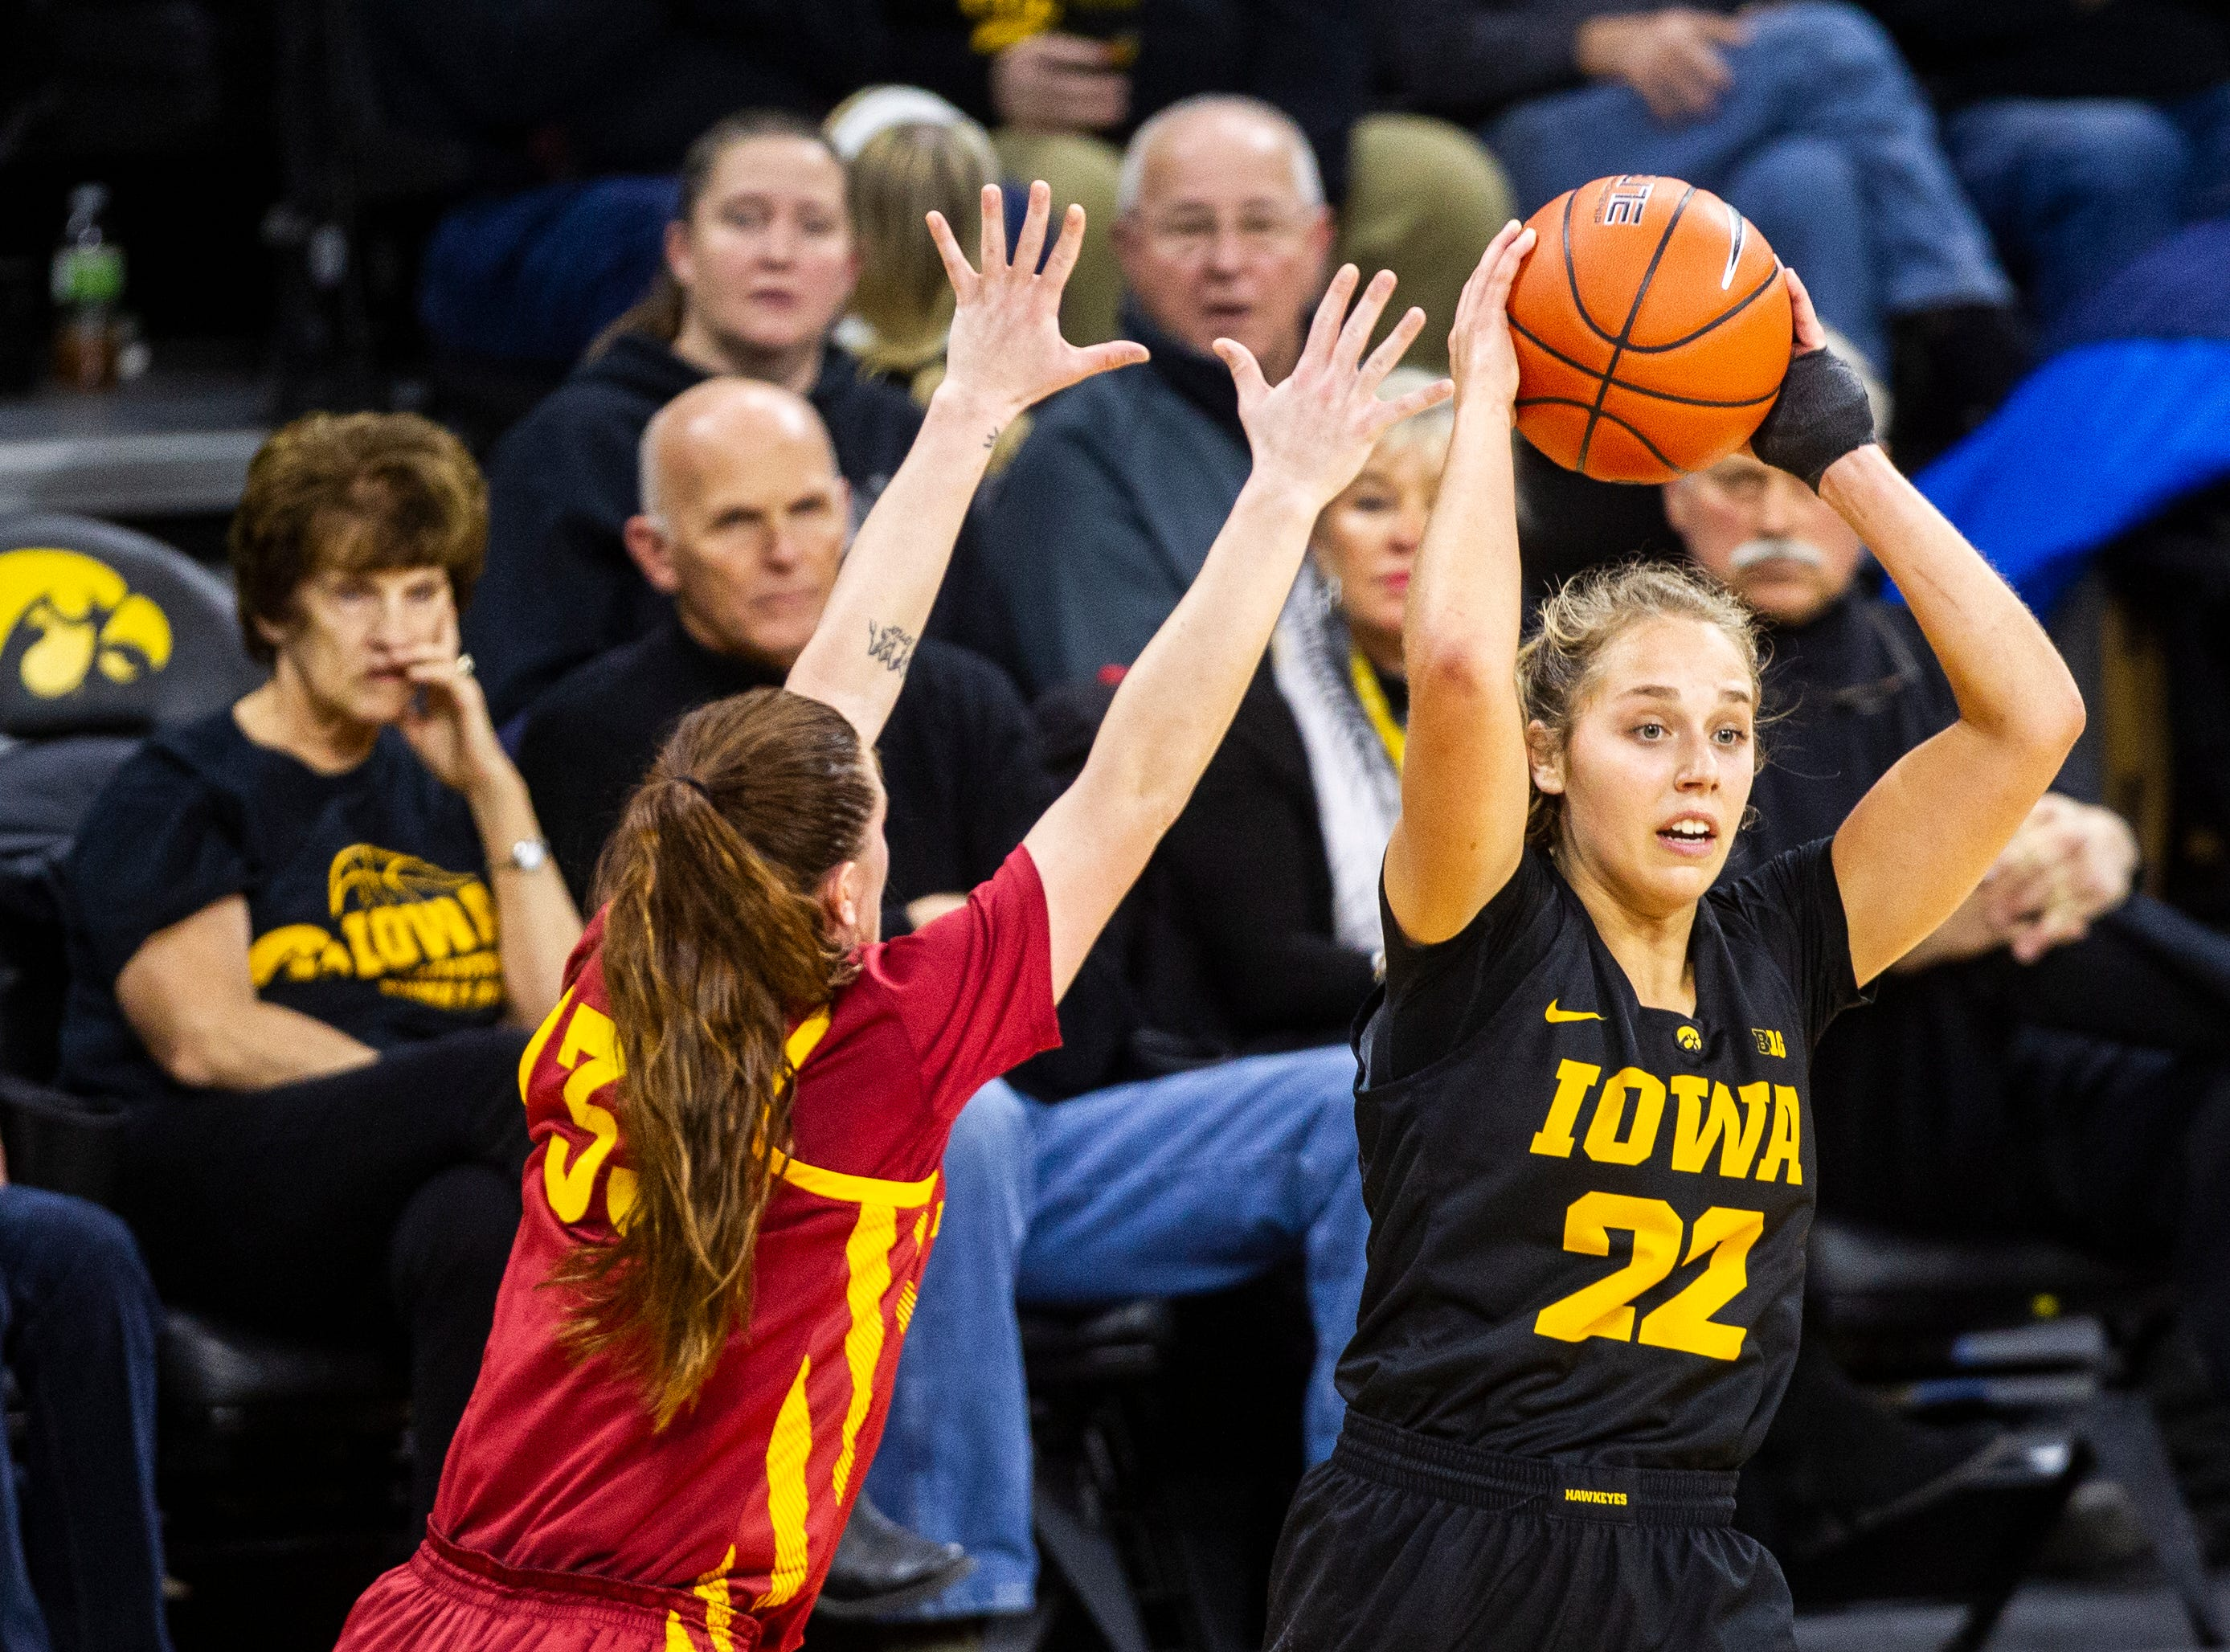 Iowa guard Kathleen Doyle (22) looks to pass during a Cy-Hawk series NCAA women's basketball game on Wednesday, Dec. 5, 2018, at Carver-Hawkeye Arena in Iowa City.